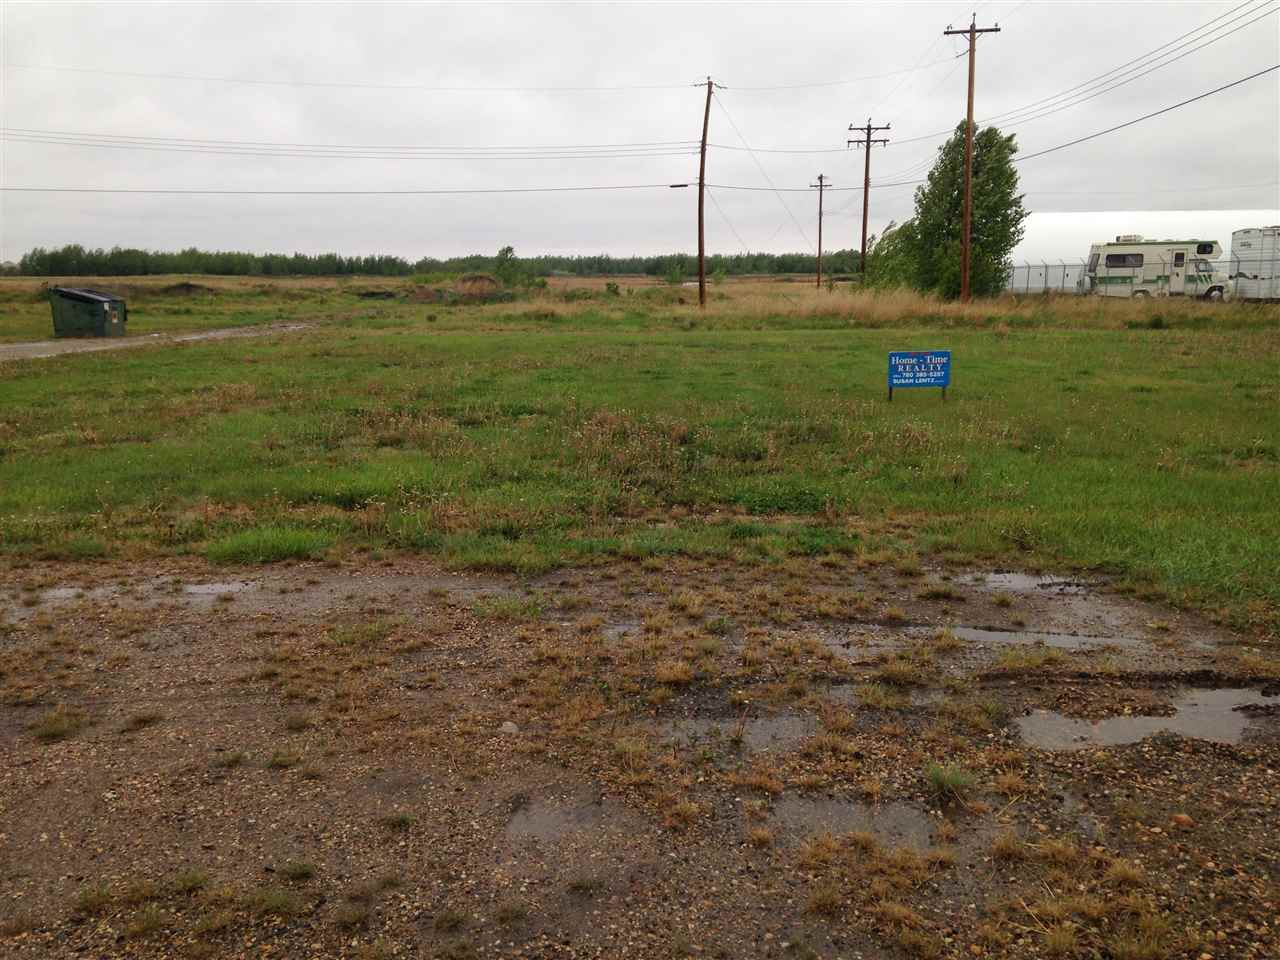 Vacant lot-cleared and ready for development. Services to Lot with potential building incentives.  This lot measures 61.25 ft x 140 ft.   The Village of Holden is located approximately 55 minutes east of Edmonton on HWY 14 and offers a K-6 Elementary School plus numerous recreational and cultural opportunities.